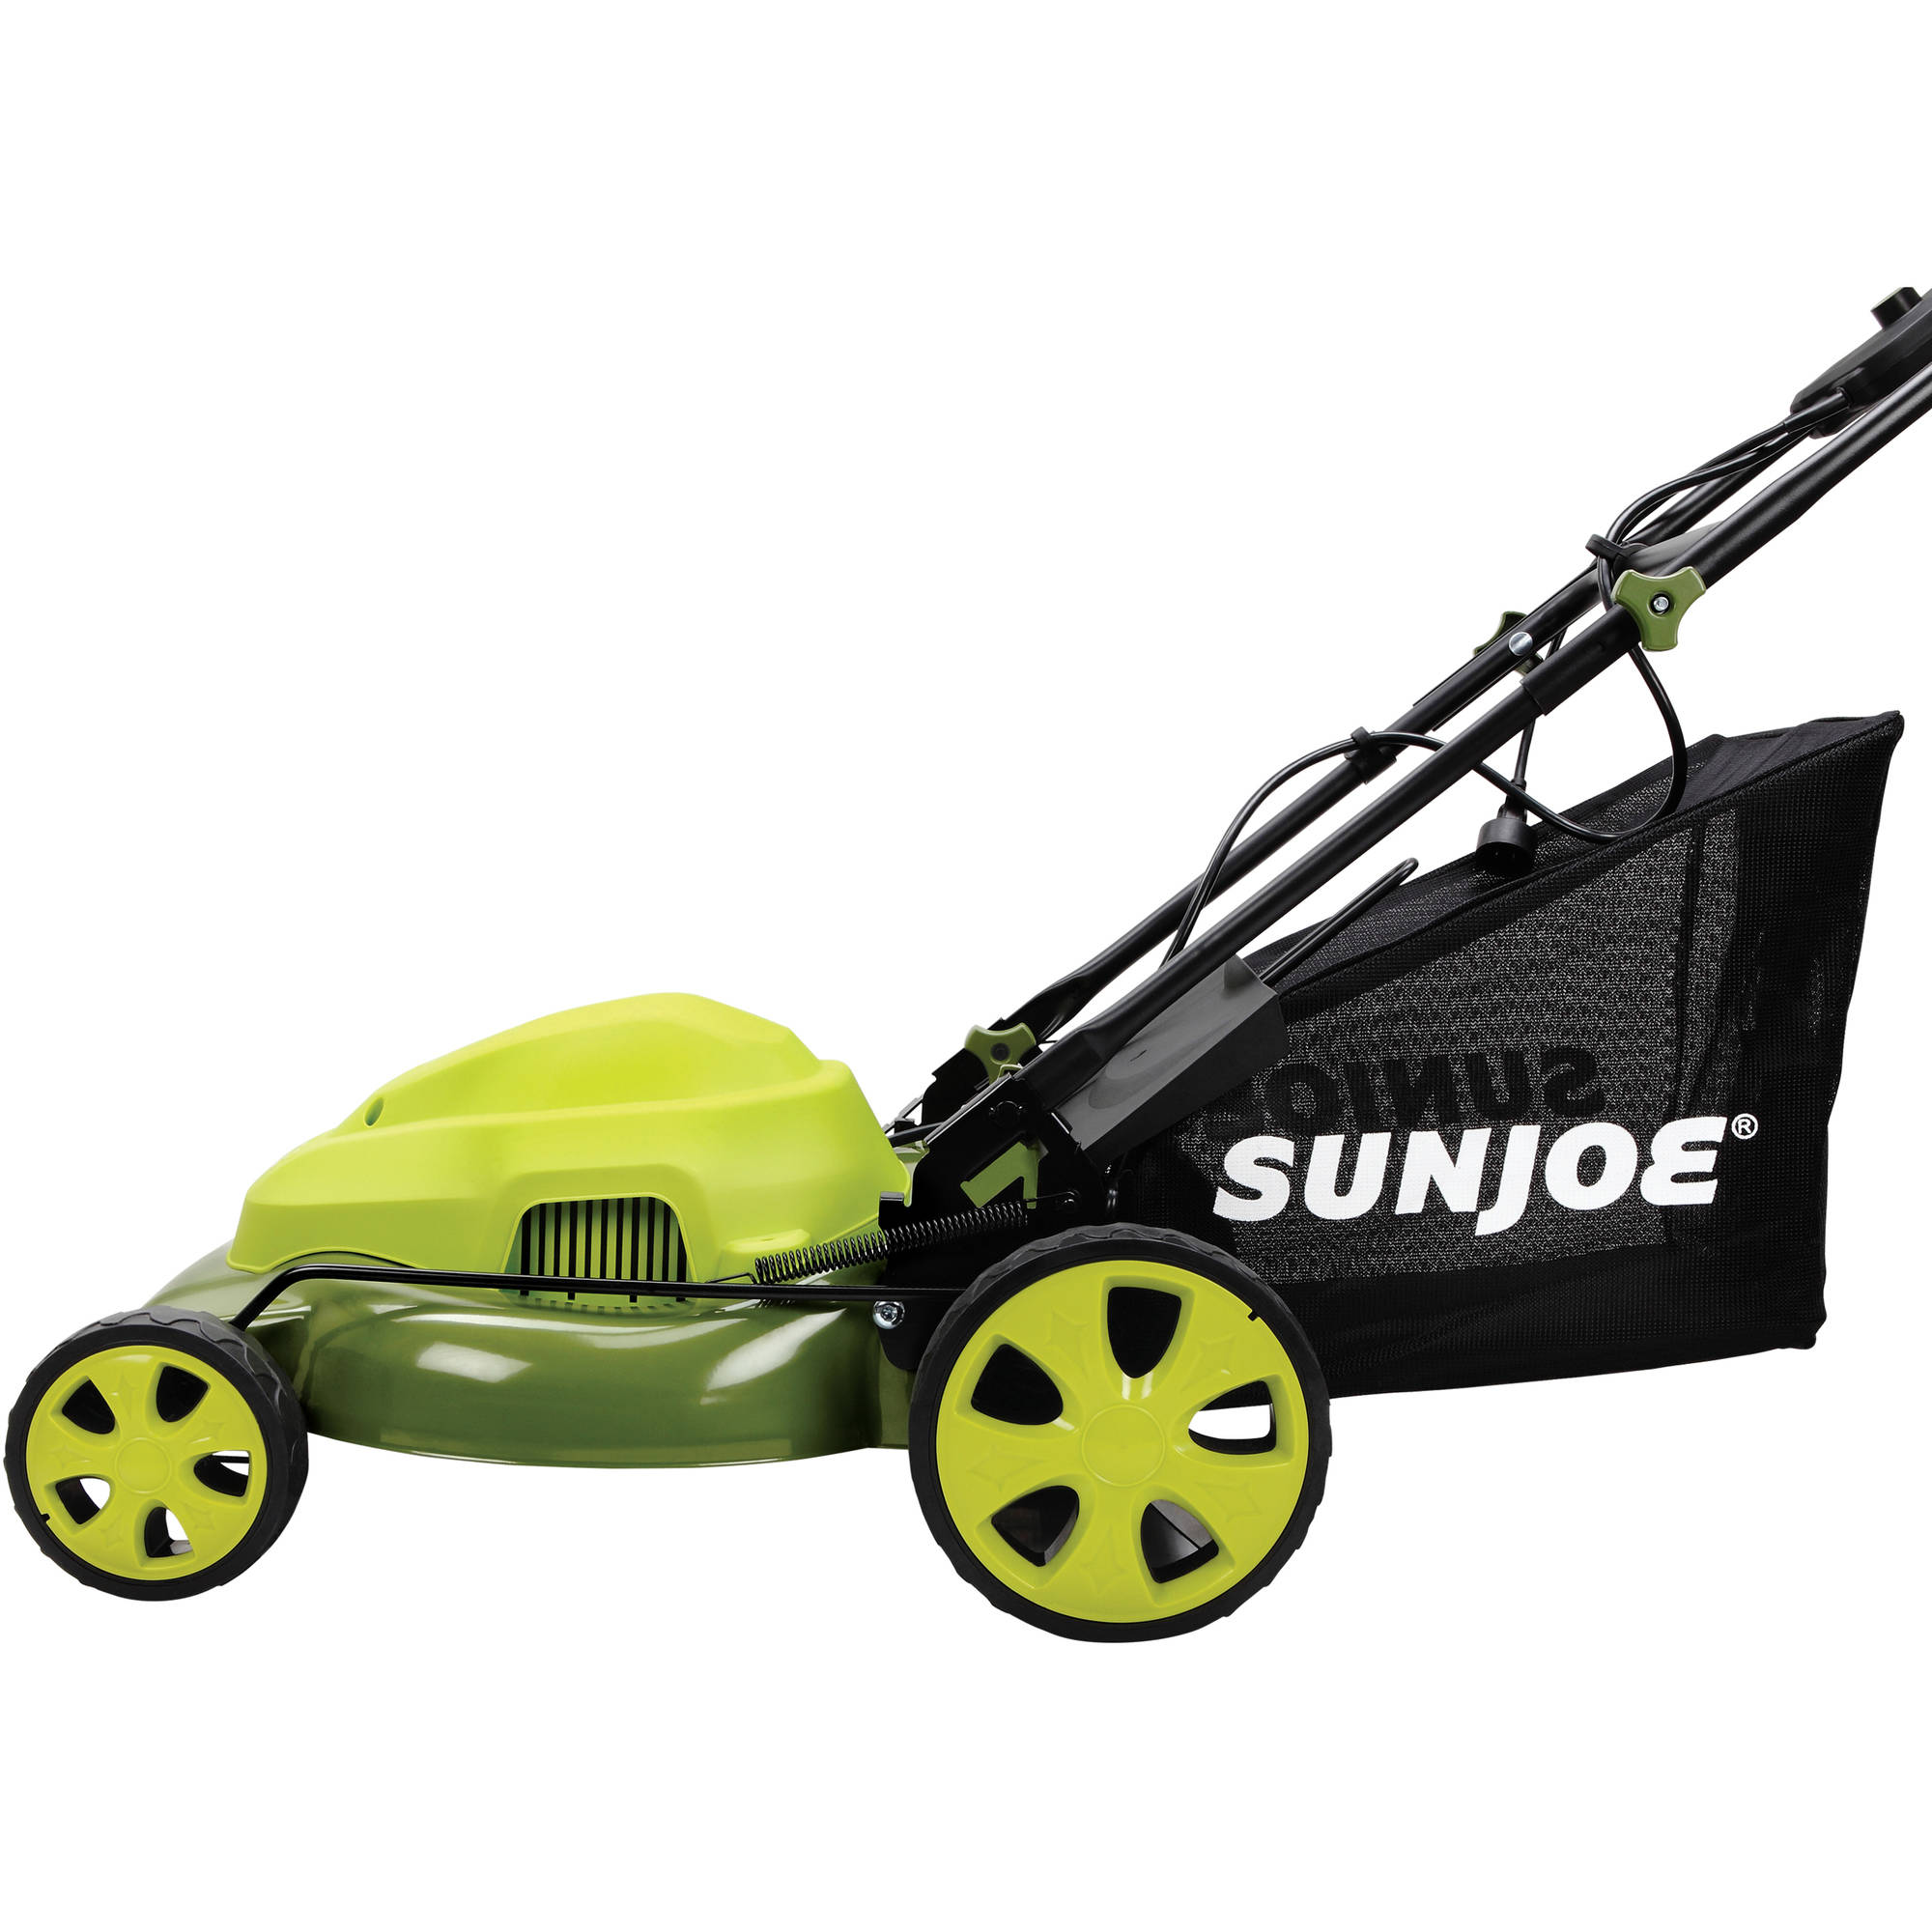 "Sun Joe Mow Joe 20"" 12-Amp Electric Lawn Mower"